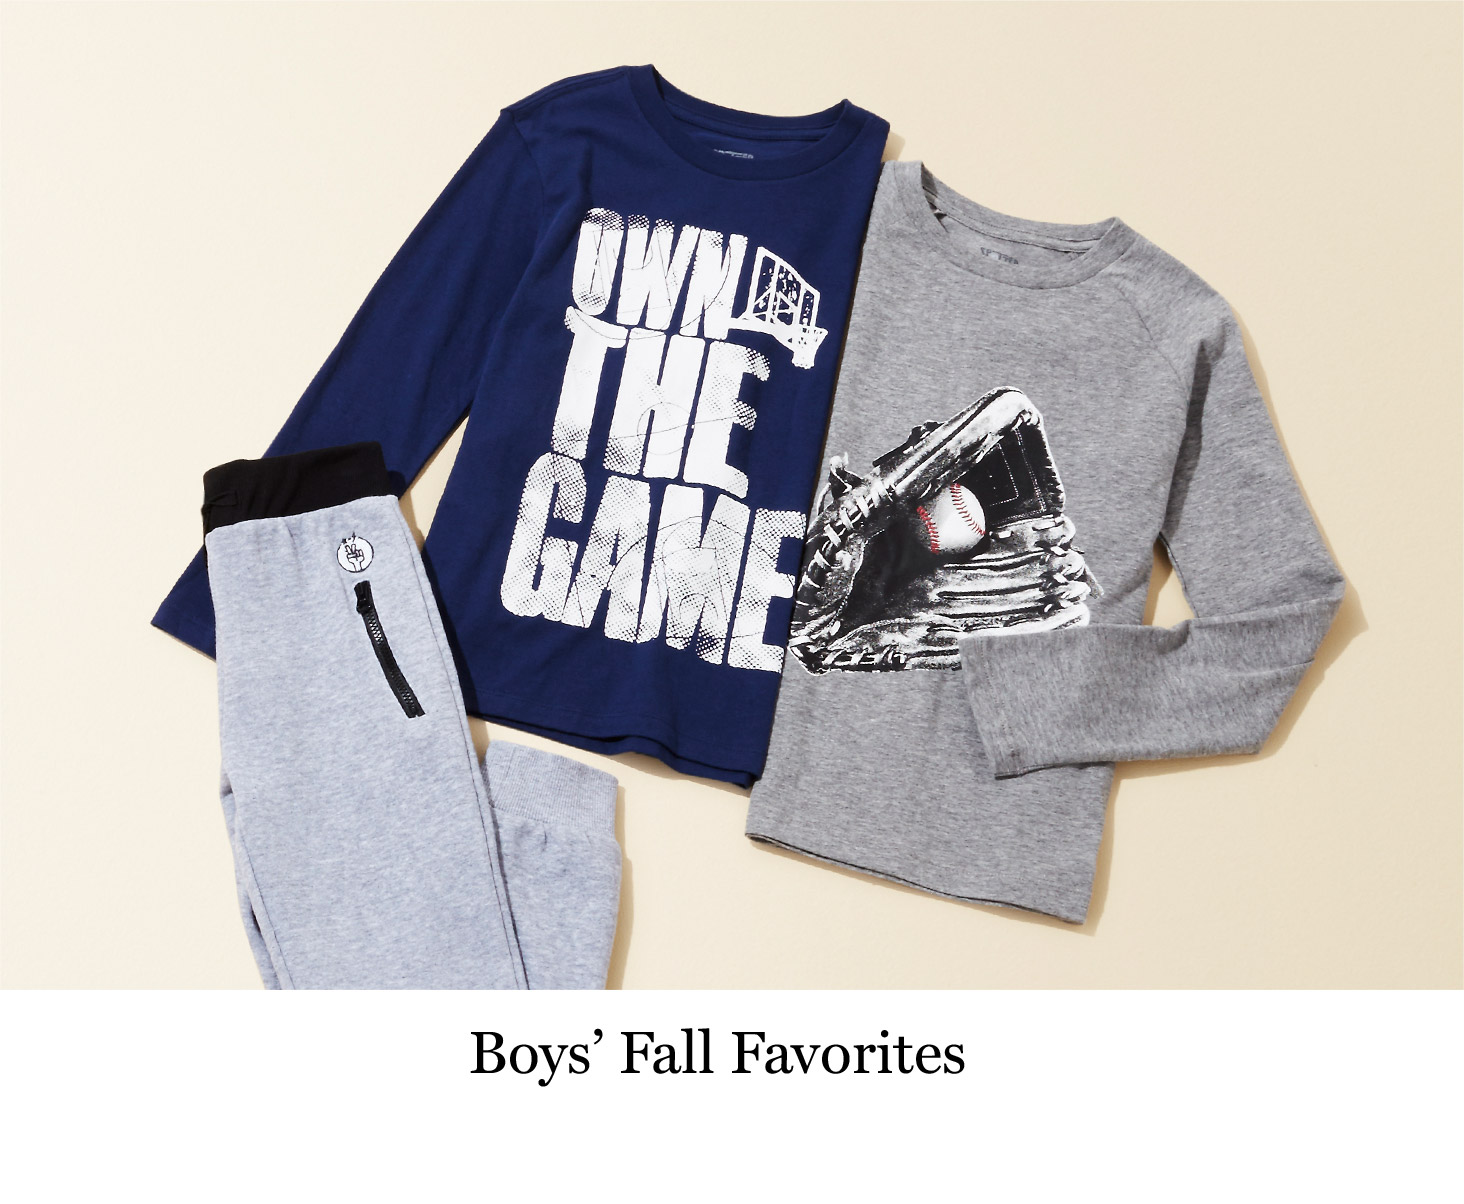 Boys' Fall Favorites